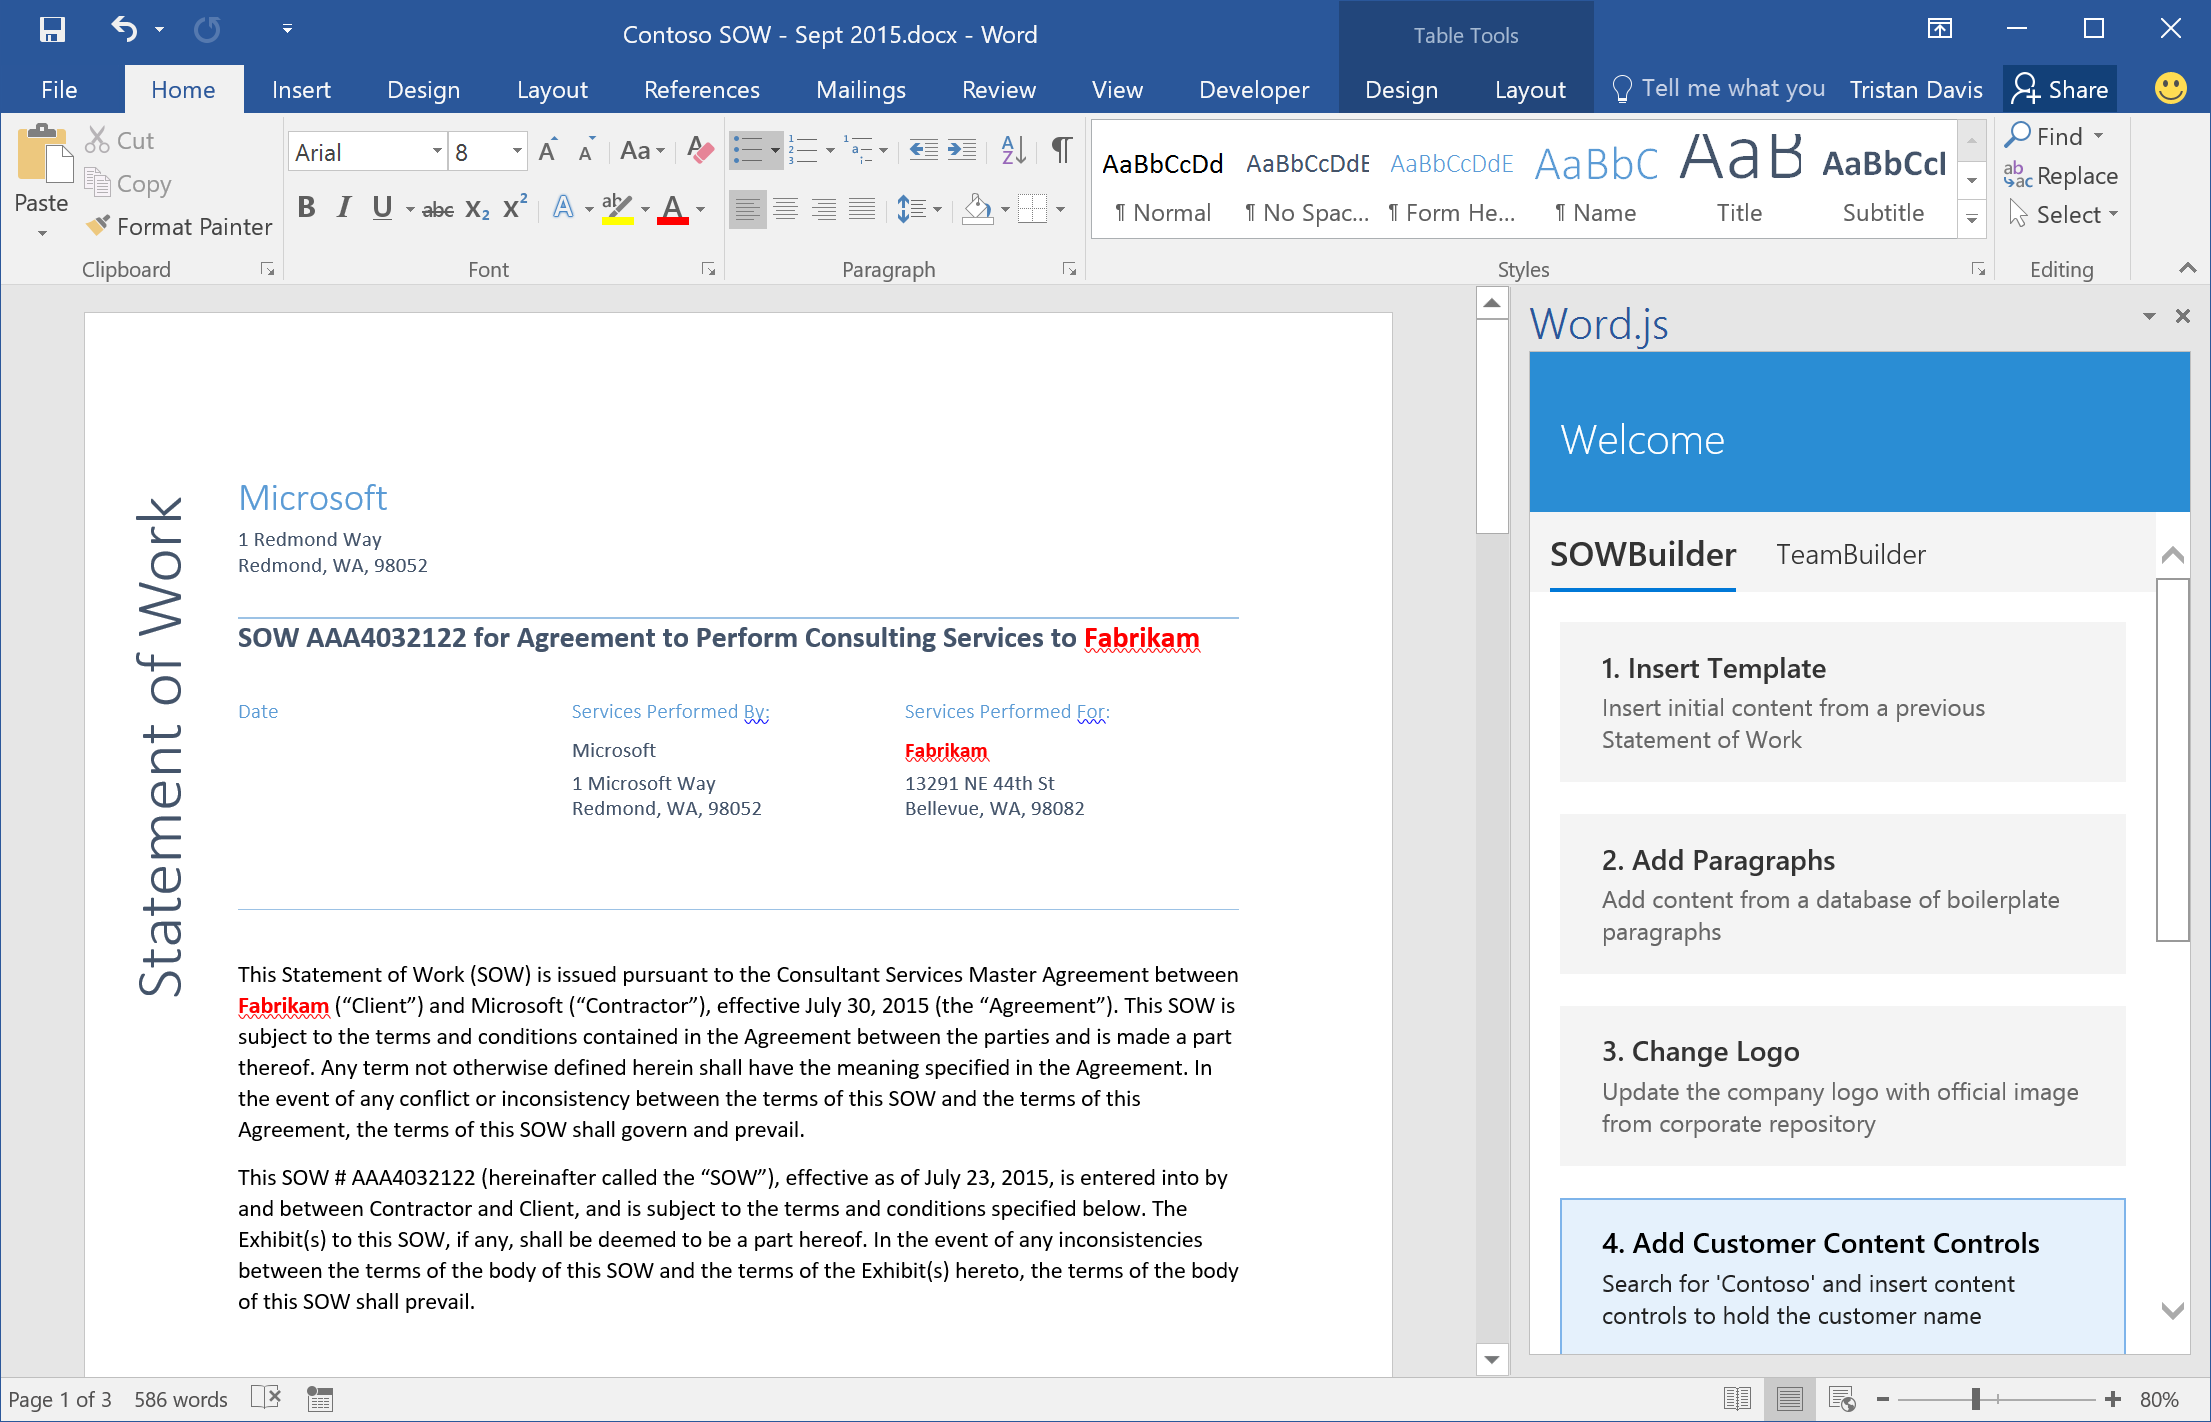 microsoft word 2016 how to delete a page